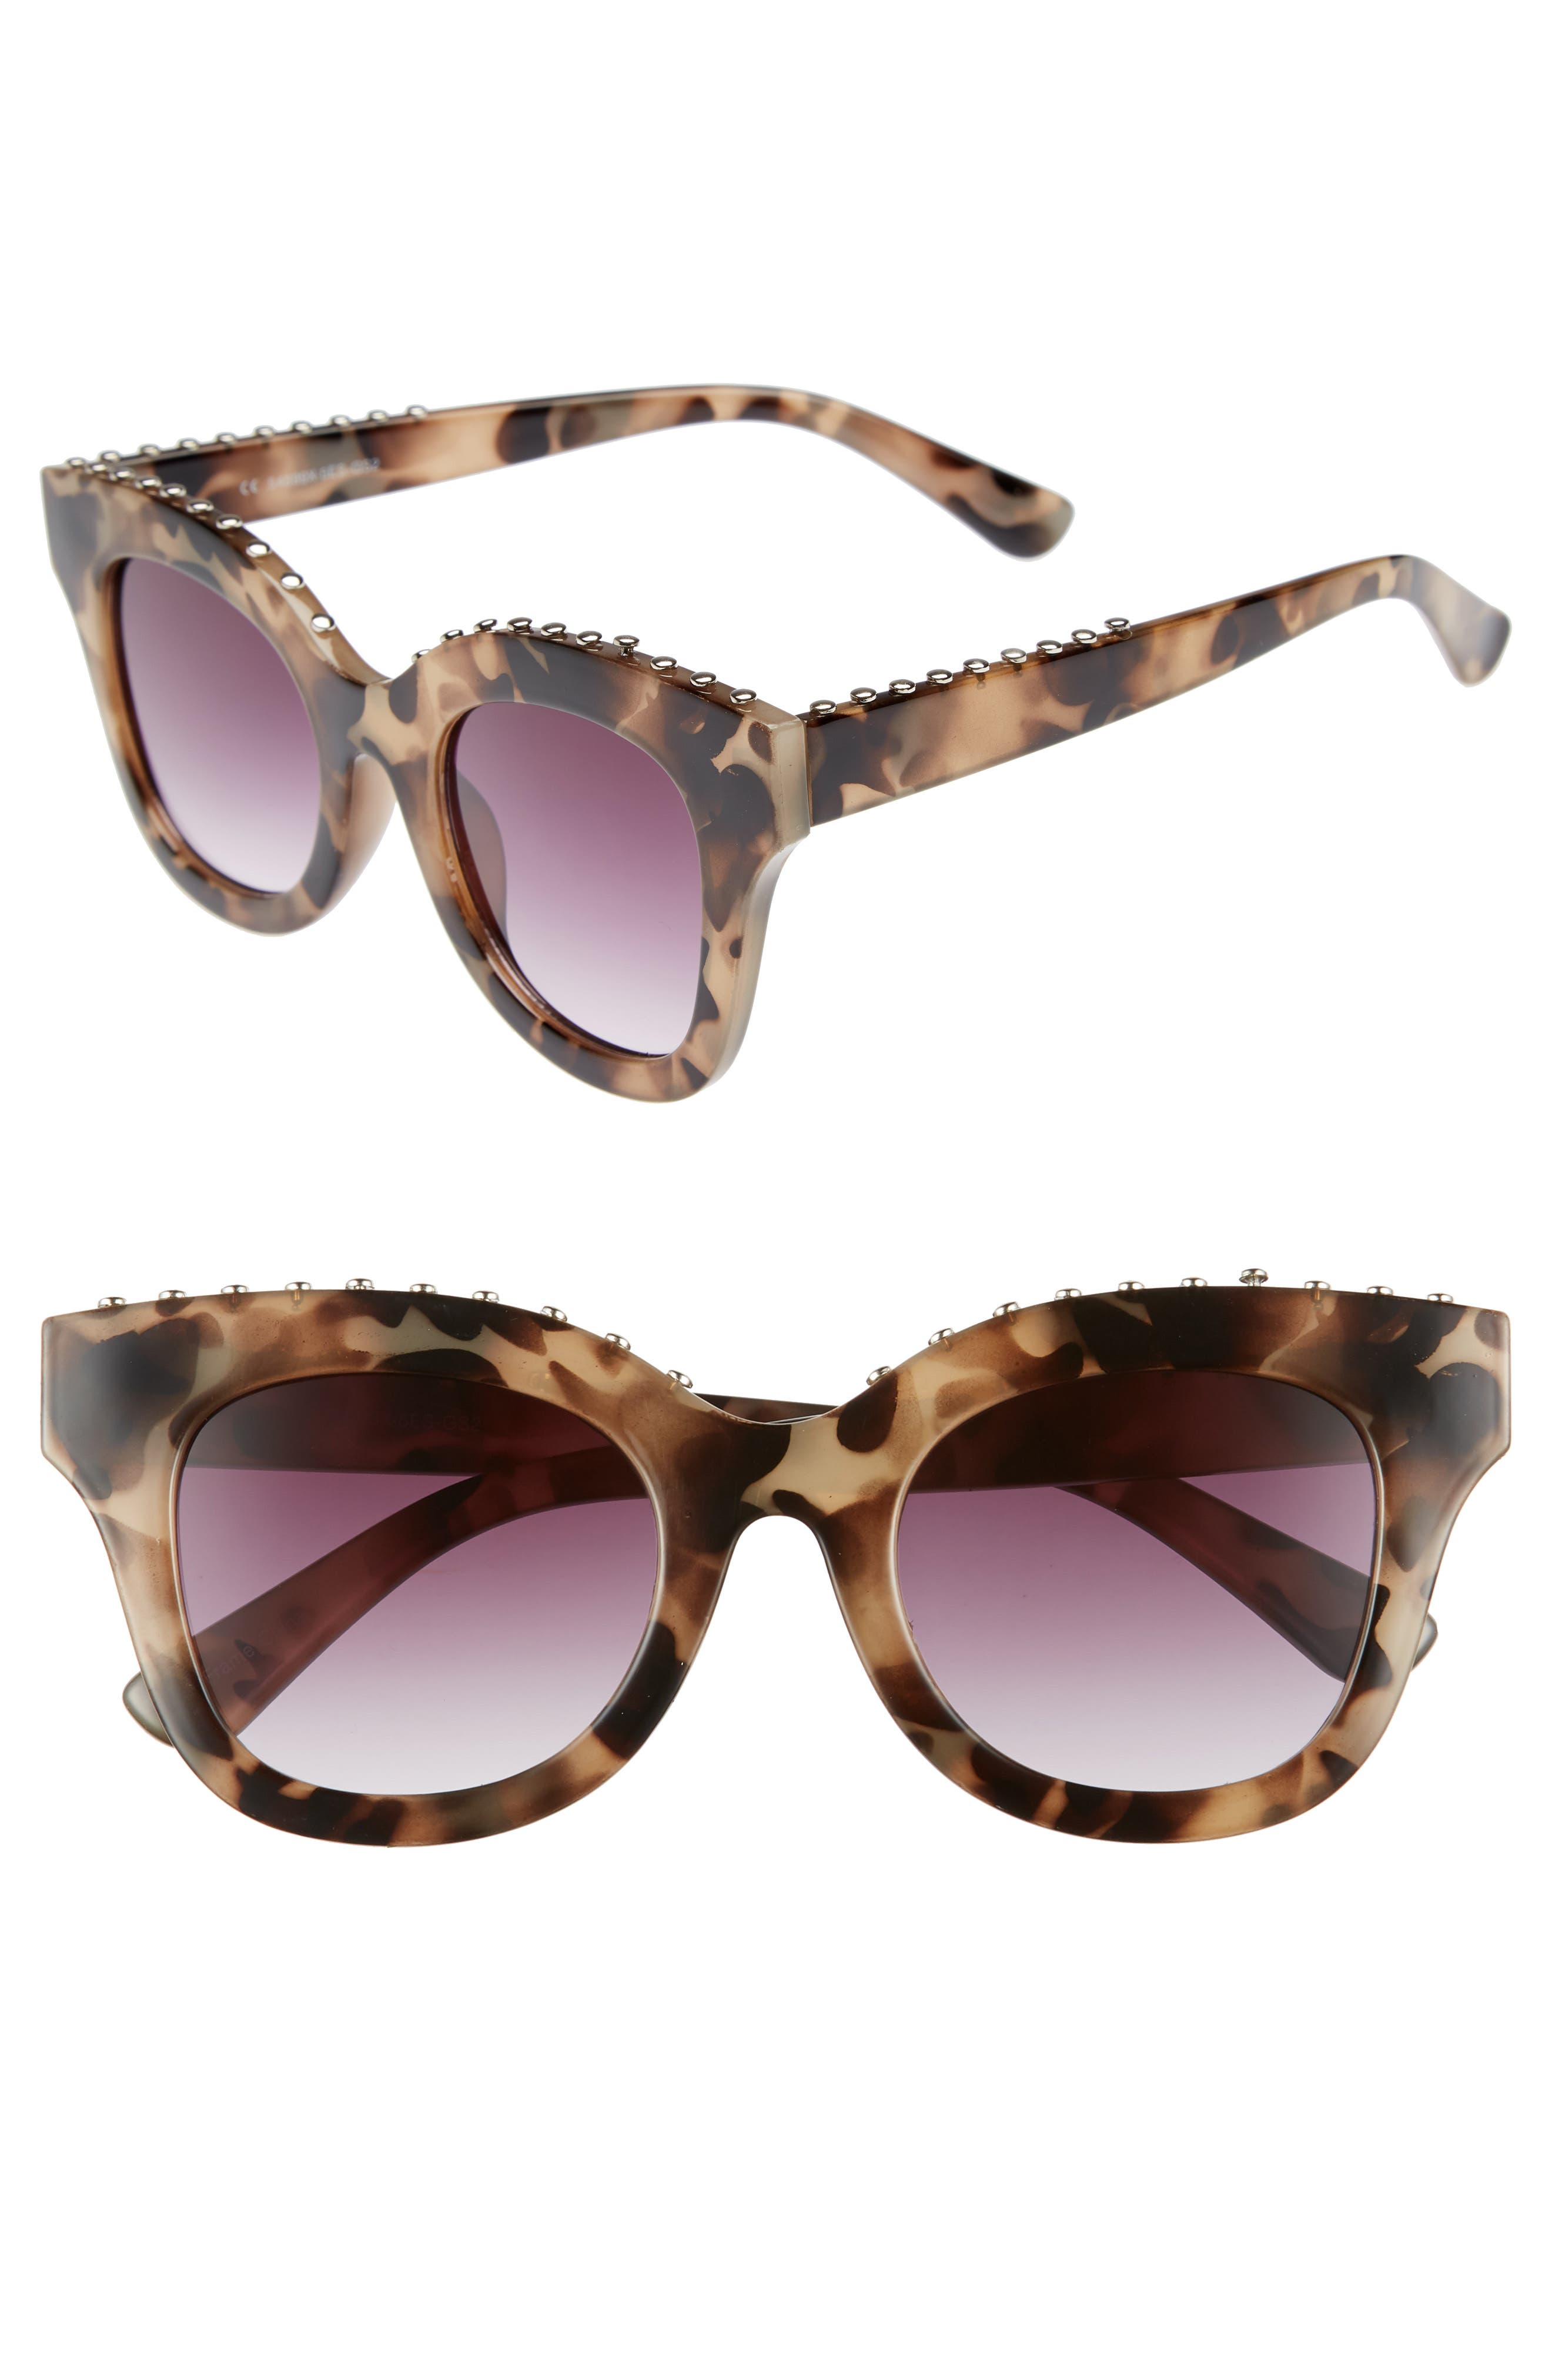 48mm Studded Sunglasses,                             Main thumbnail 1, color,                             200